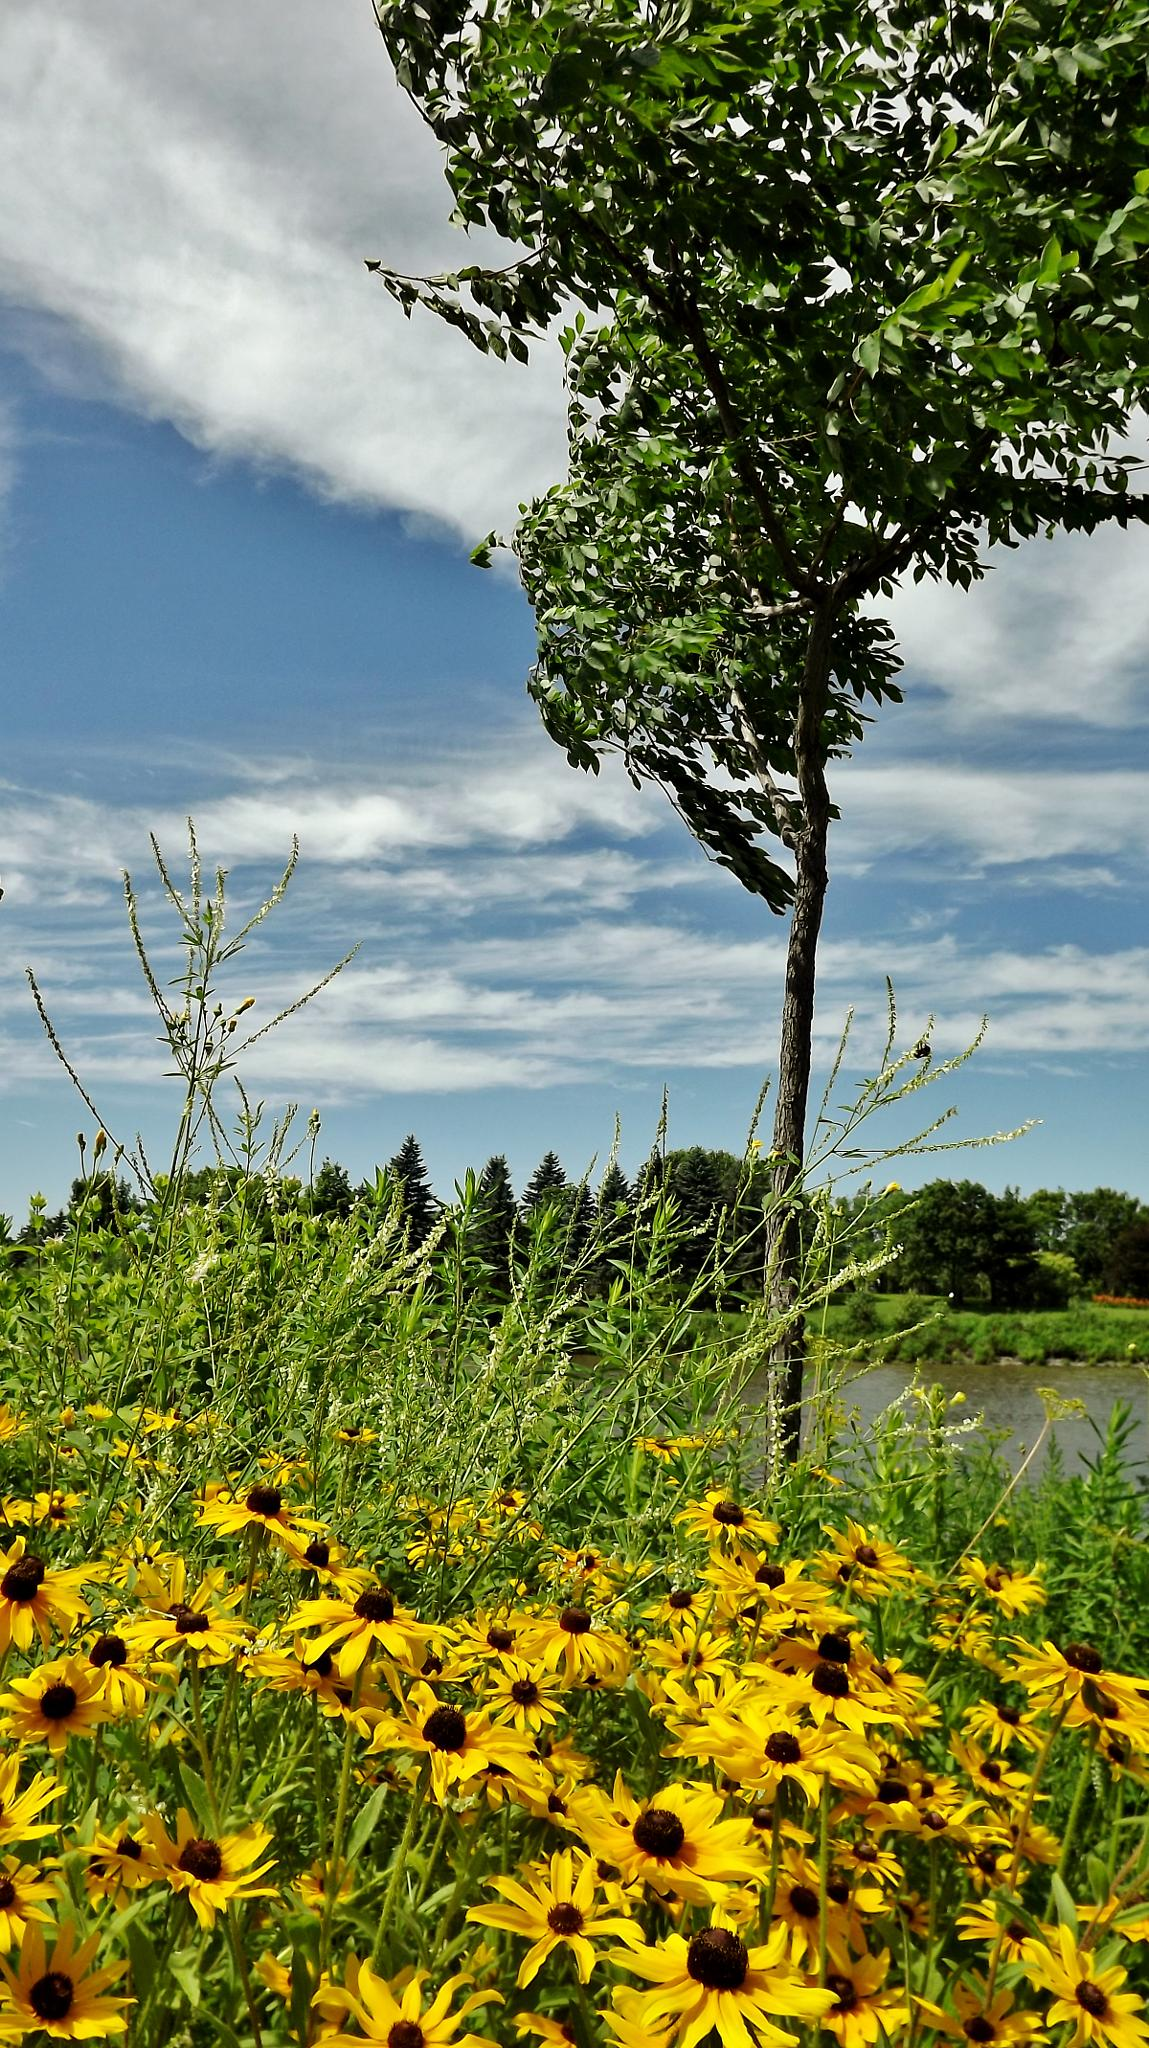 Flowers & river by real.michaud.5036